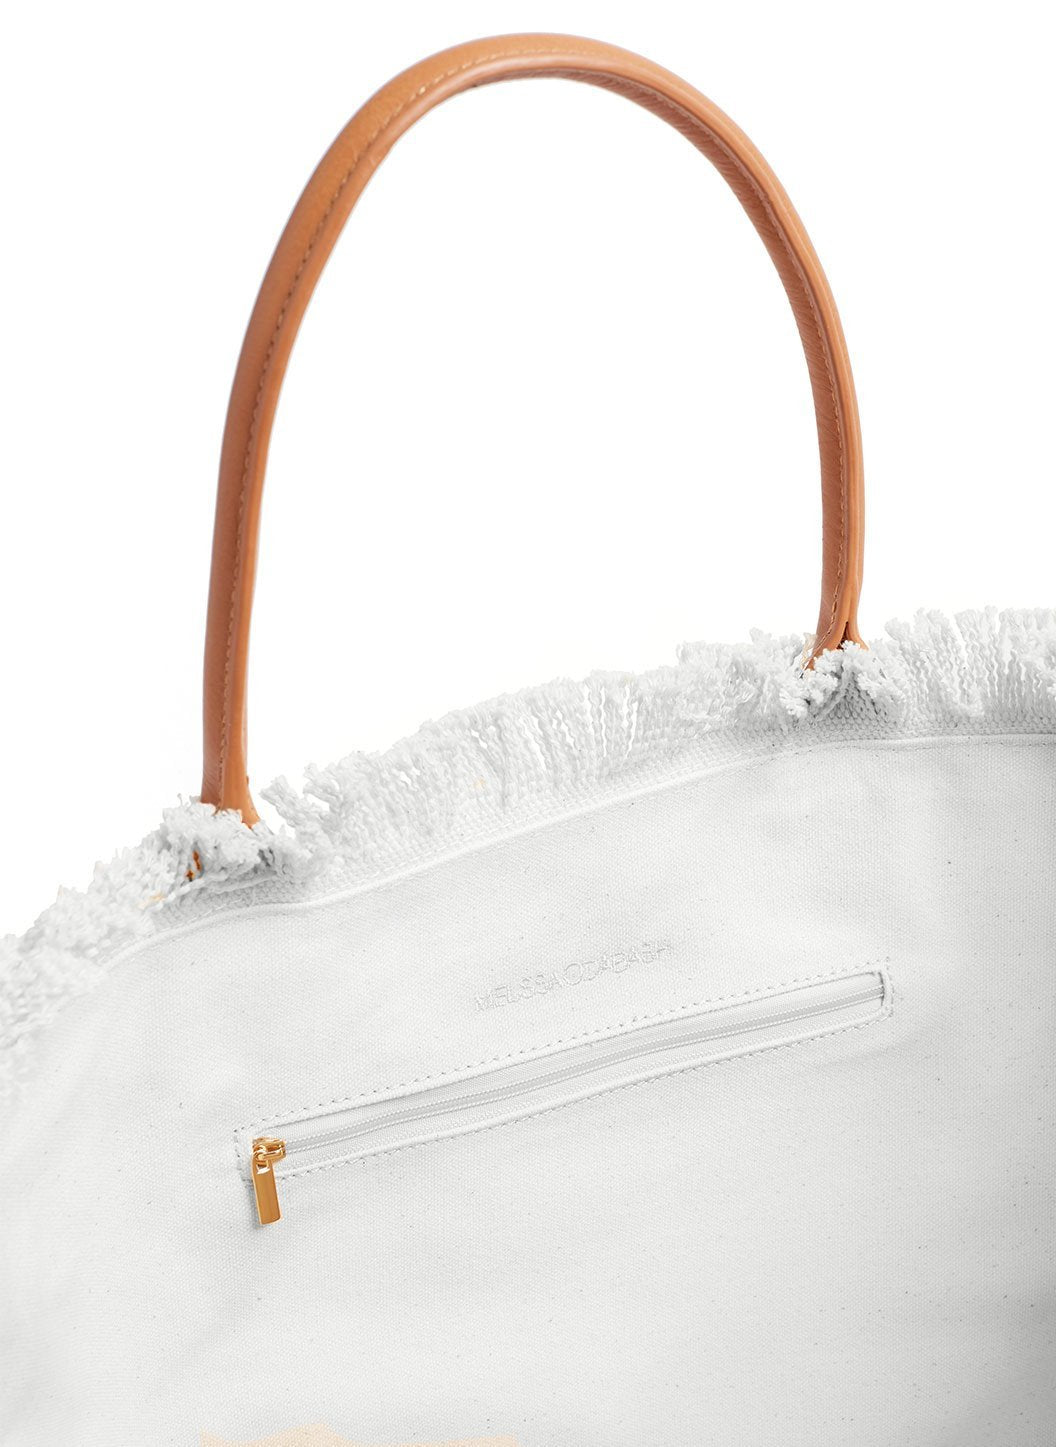 cap ferrat large beach tote white 3 2019